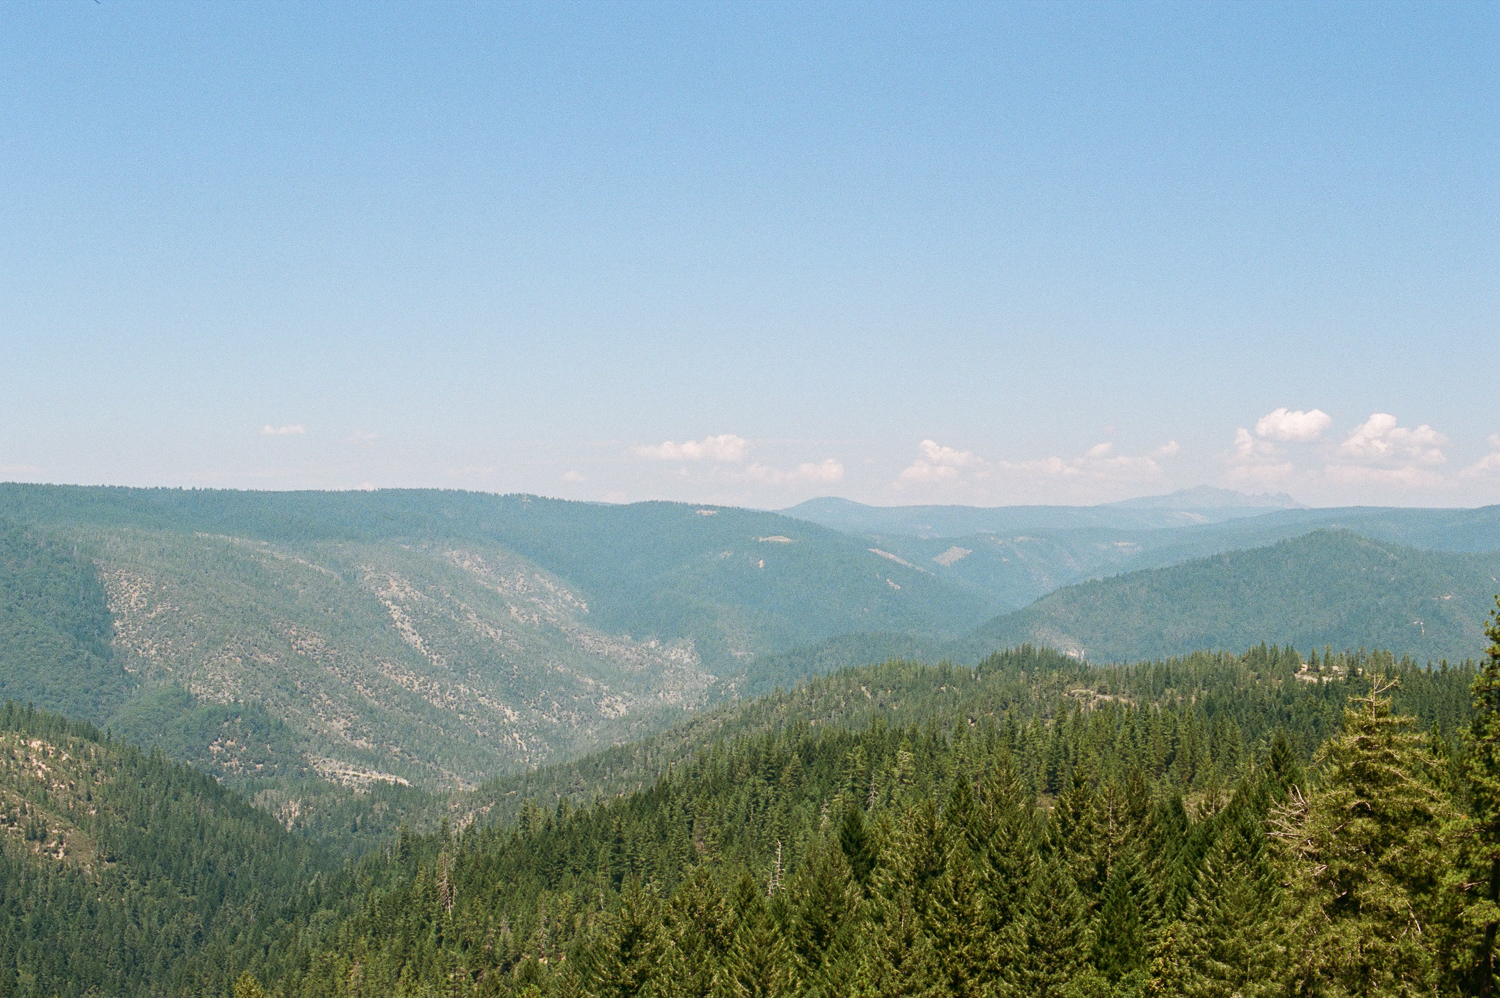 The view from the Lookout Point on Highway 20 towards Donner. | Nikon F100 on Portra 400